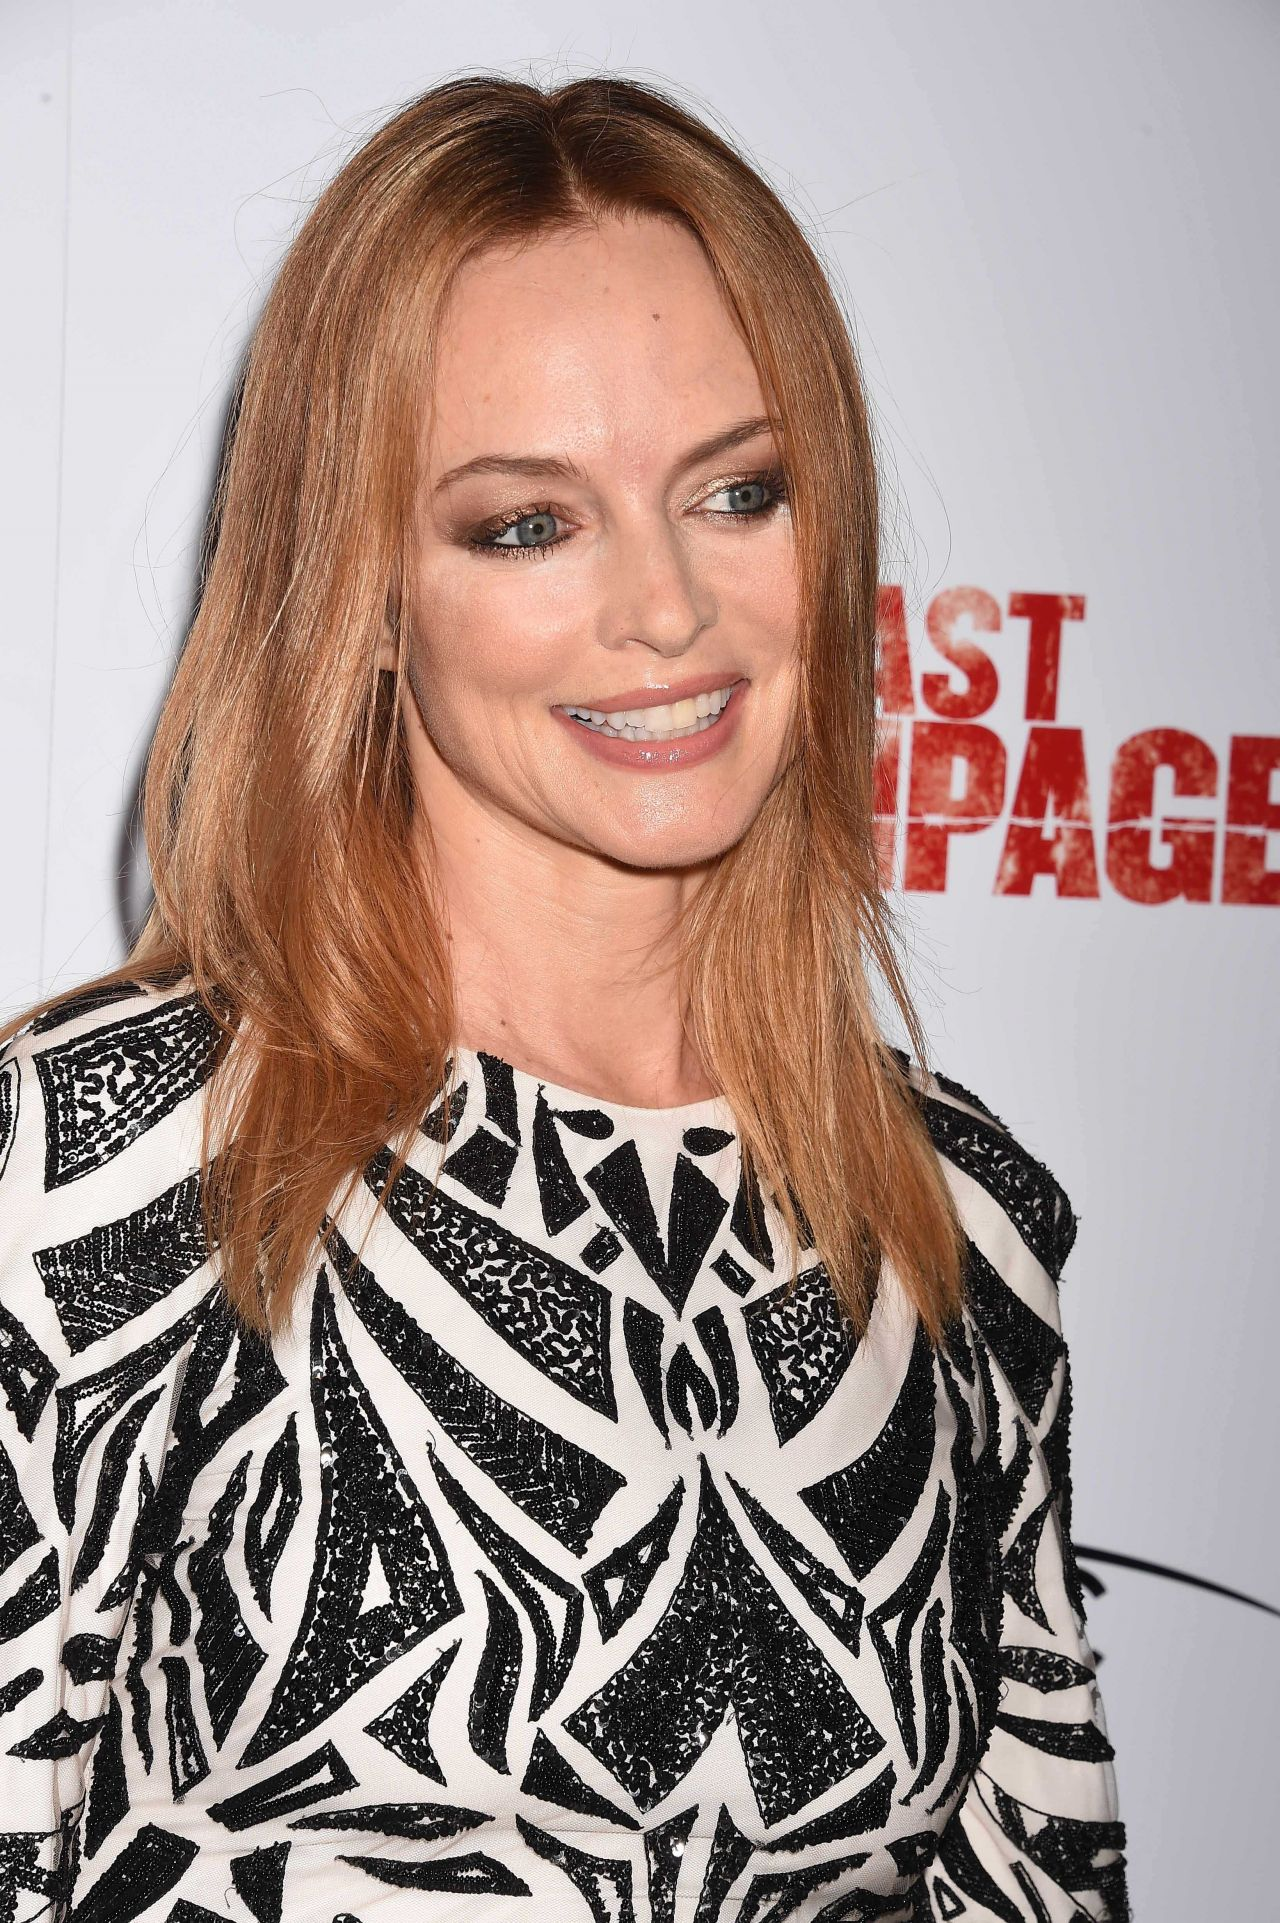 Heather Graham The Last Rampage Movie Premiere In Los